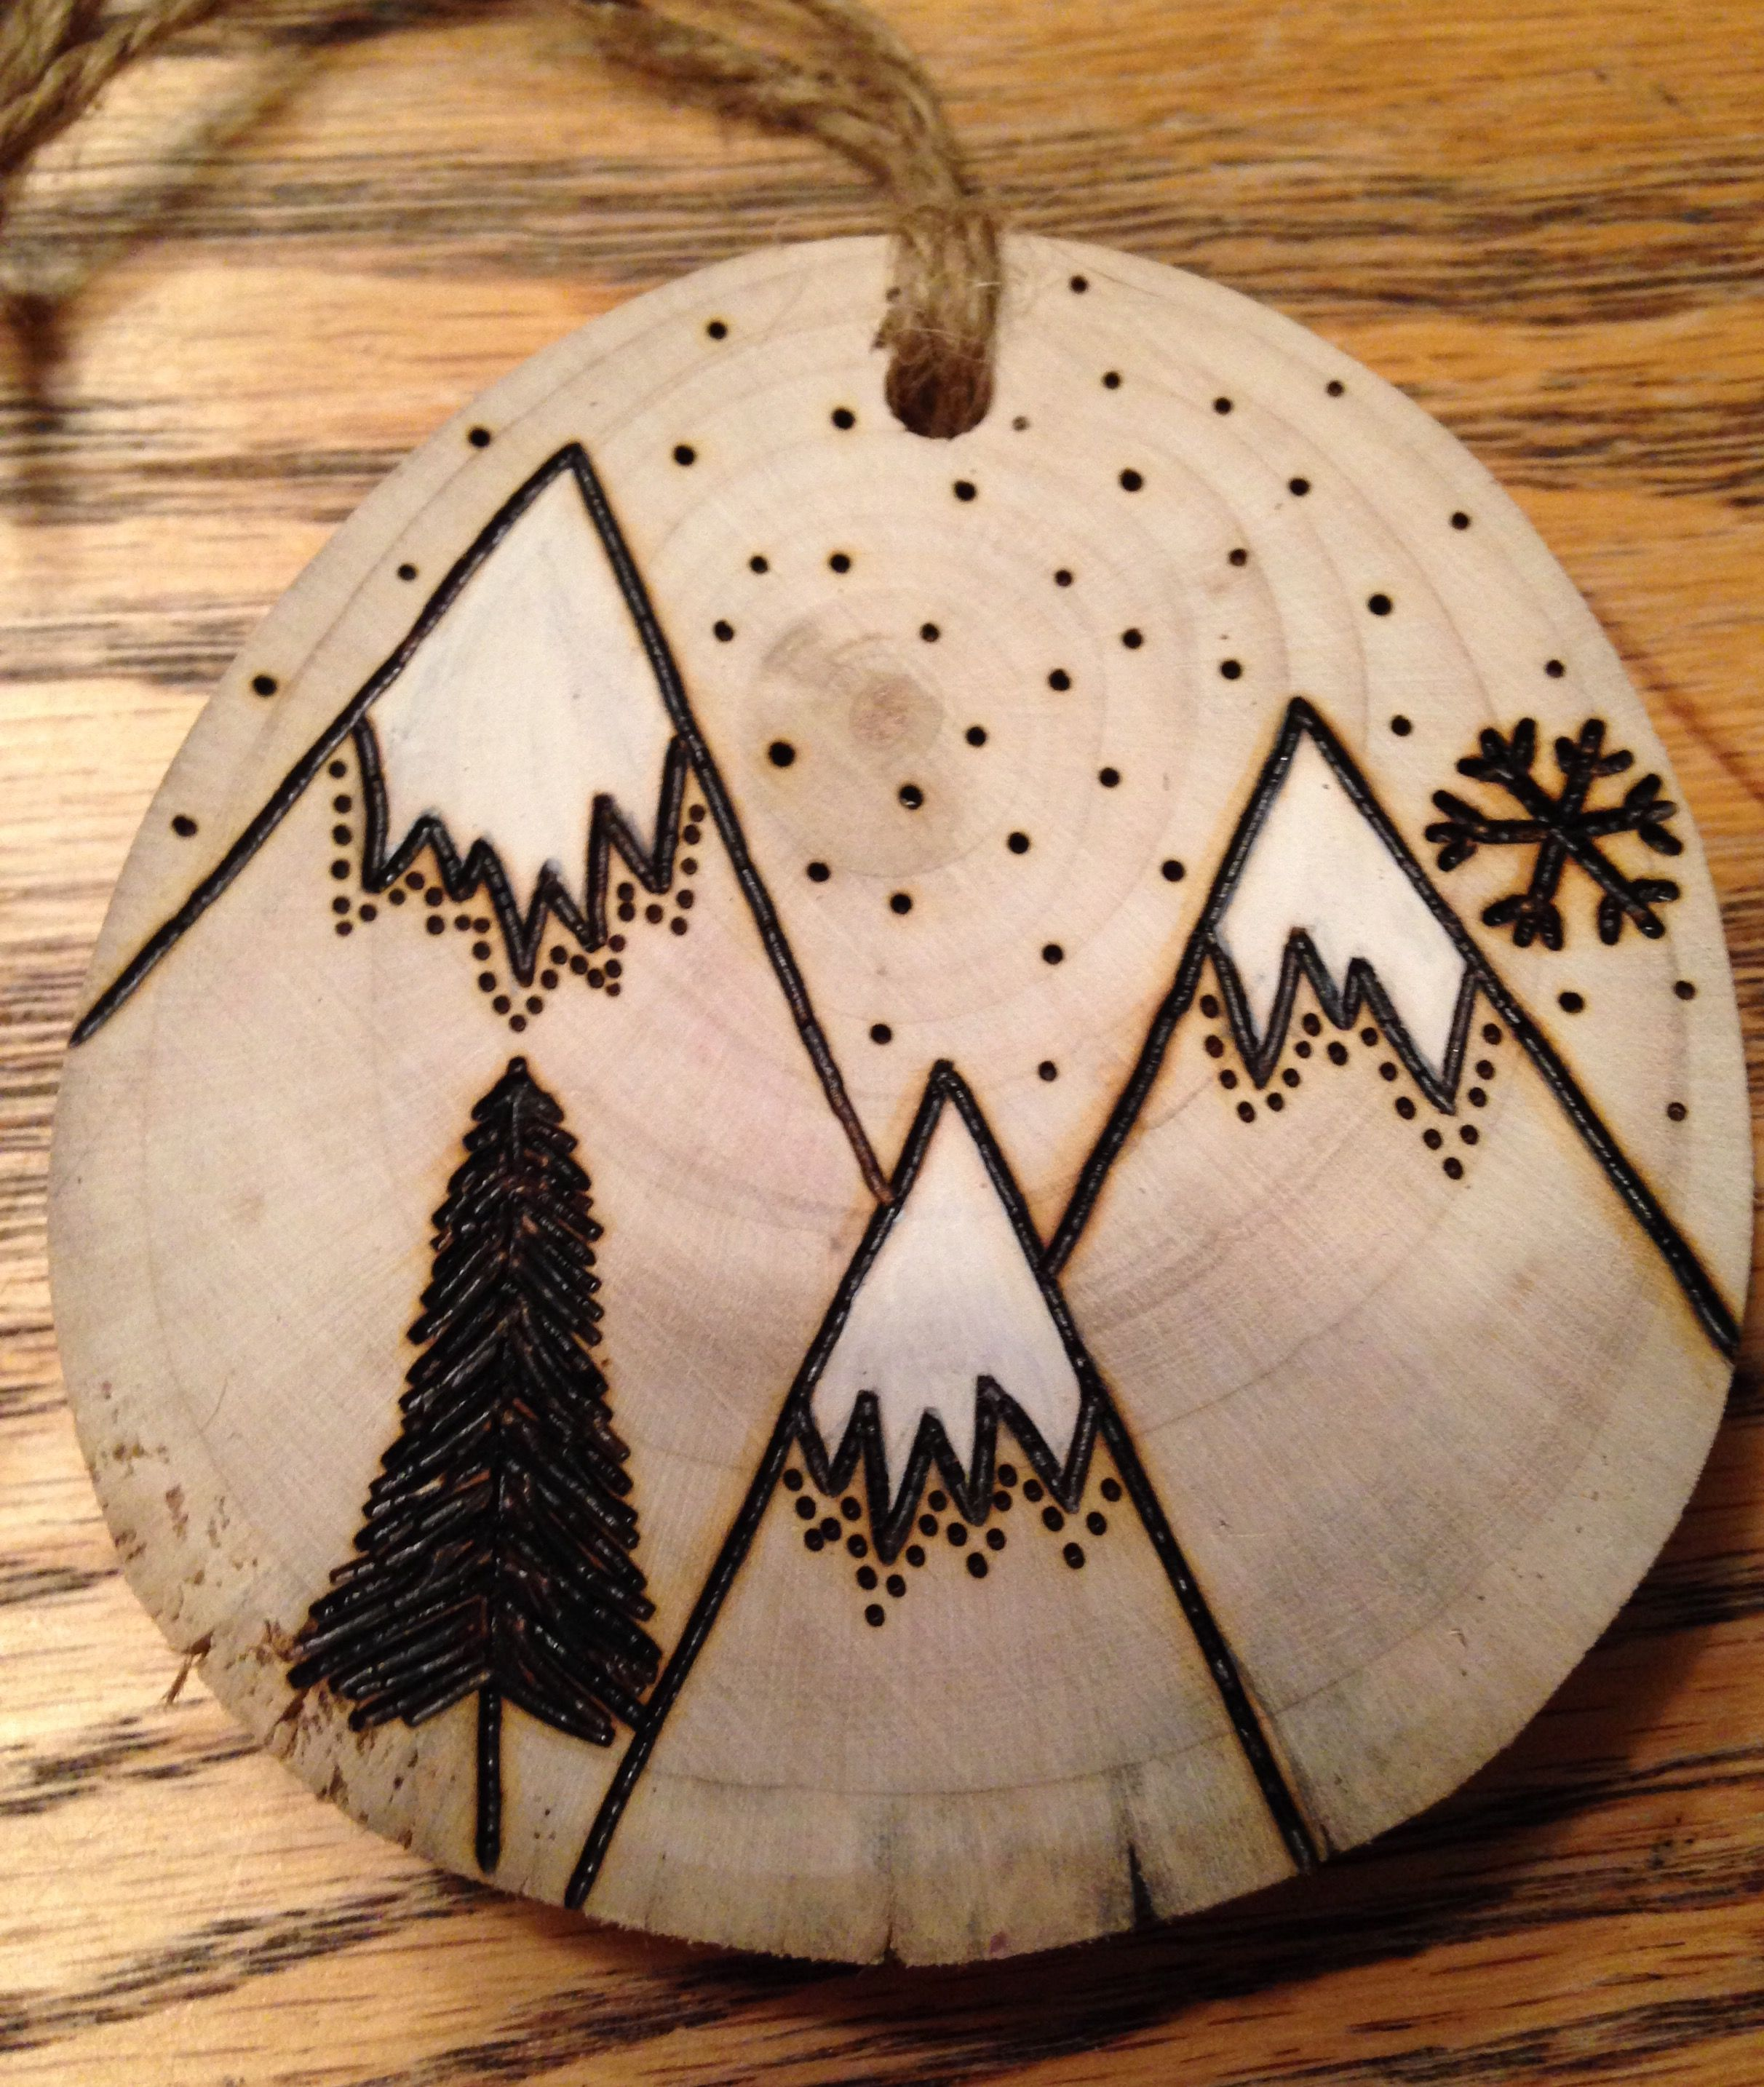 Rustic Hand Painted Mountain Wood Burned Ornament Natural Wood Wood Burning Art Wood Ornaments Christmas Craft Projects